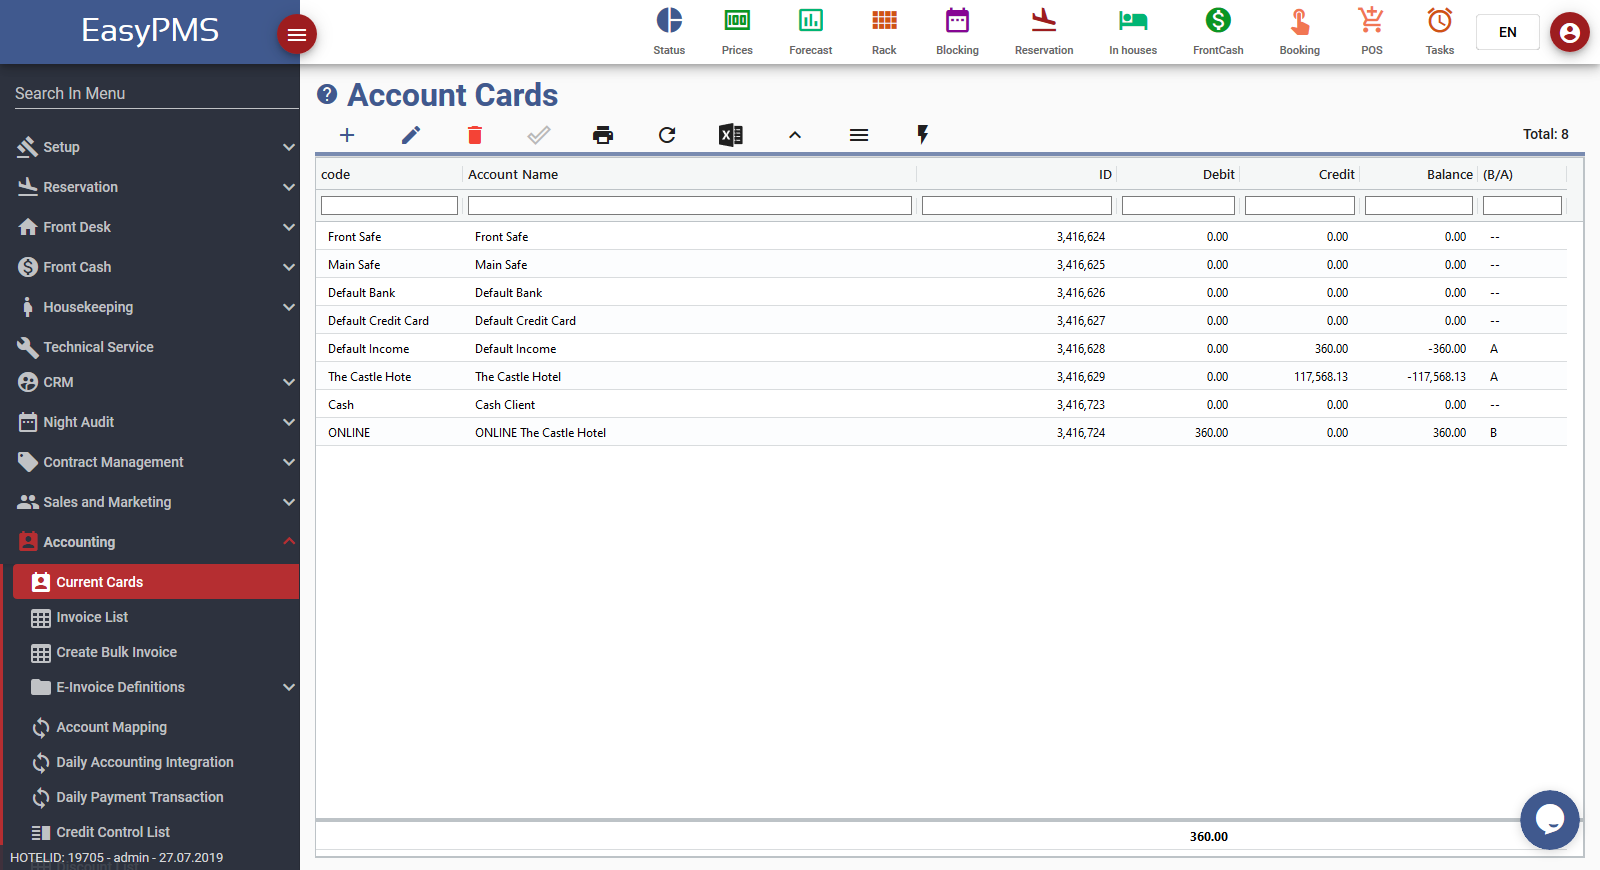 easypms hotel software account cards